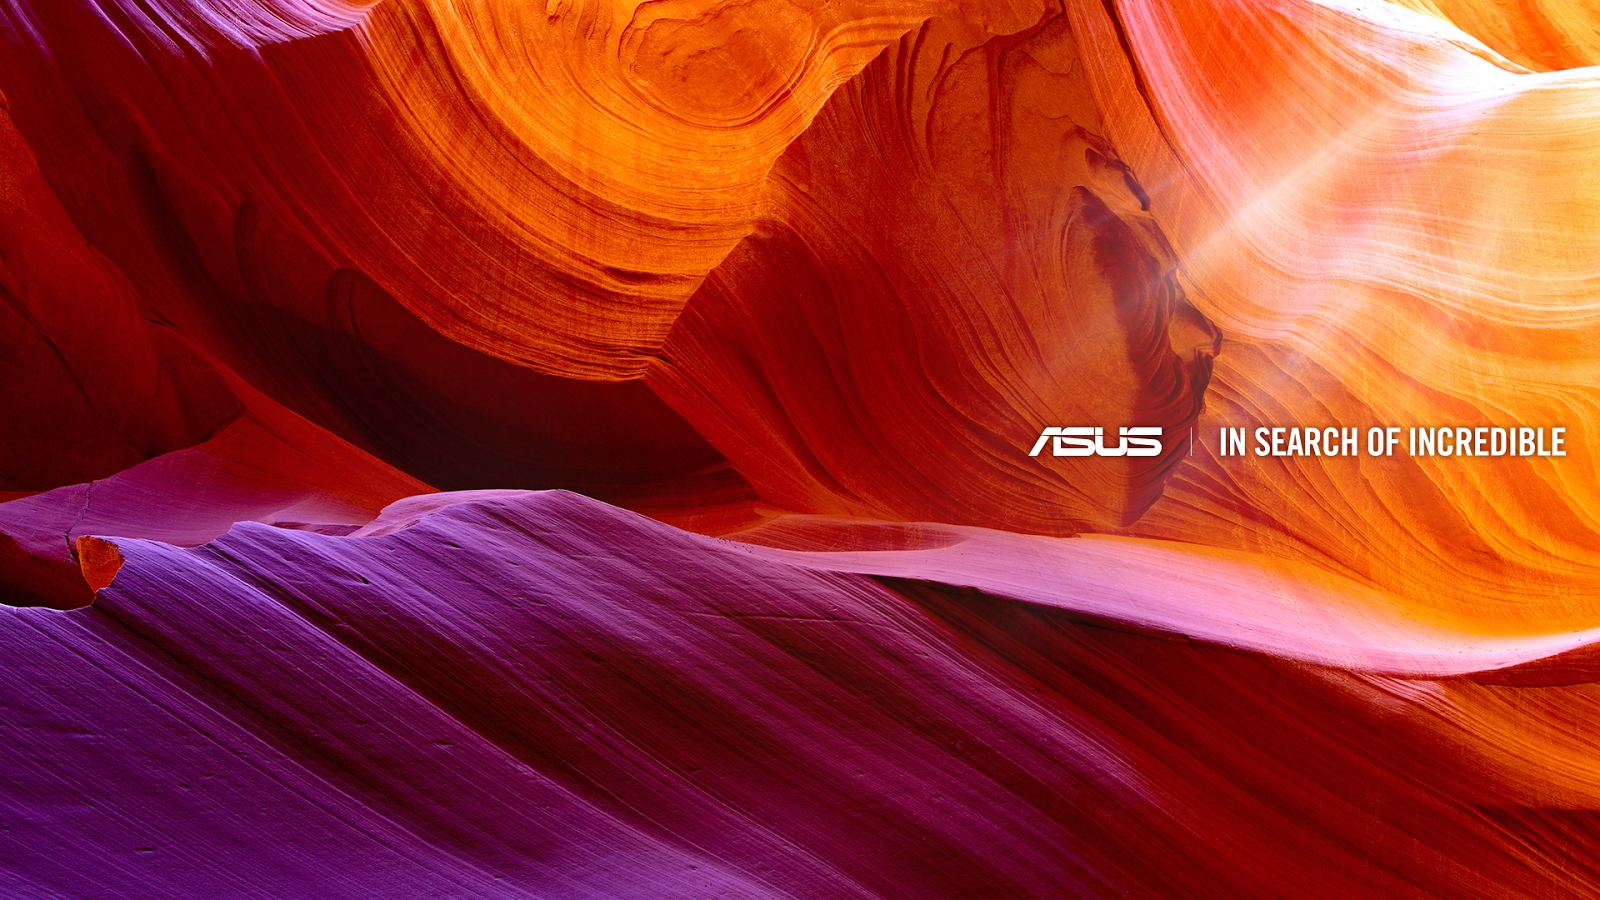 asus in search of incridible wallpaper